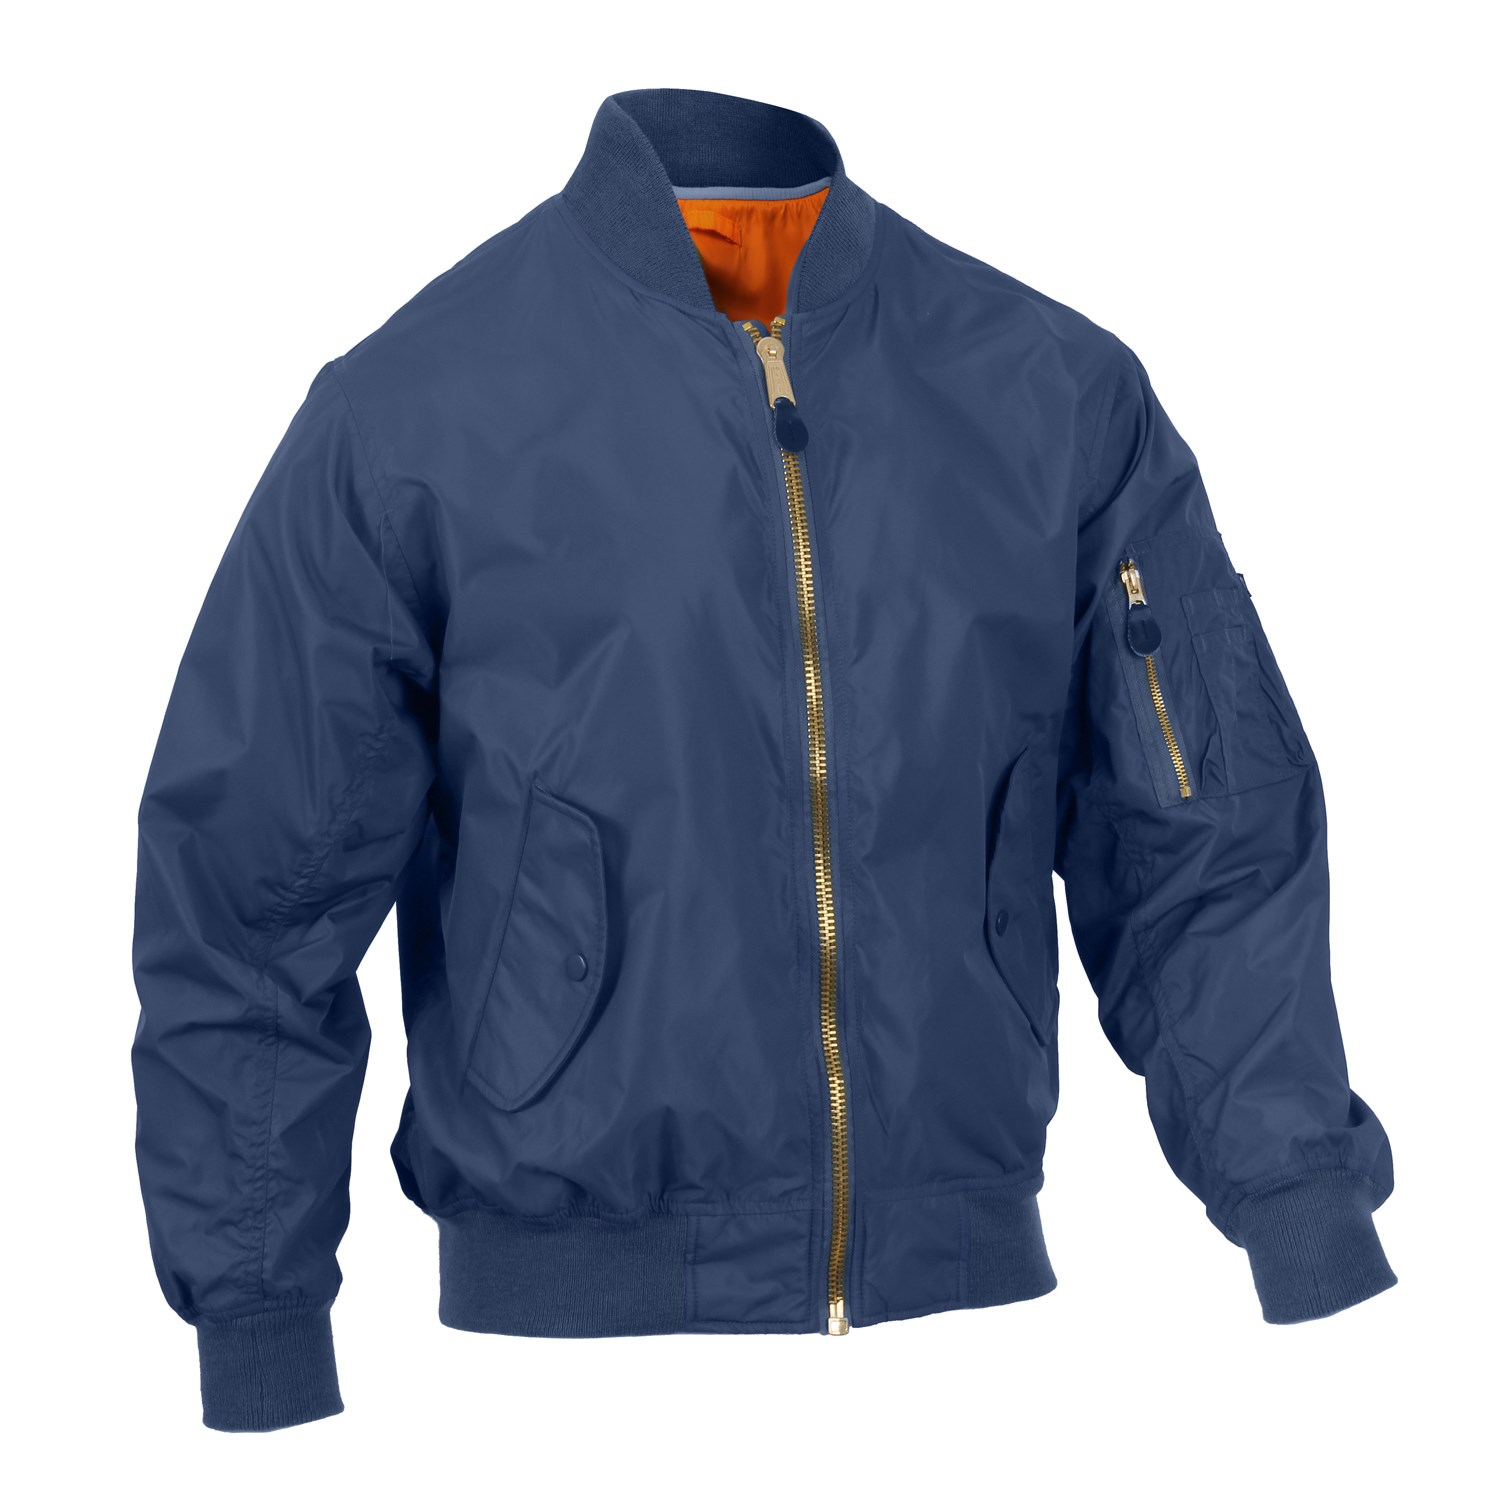 Jacket MA1 FLIGHT NAVY BLUE ROTHCO 6330 L-11